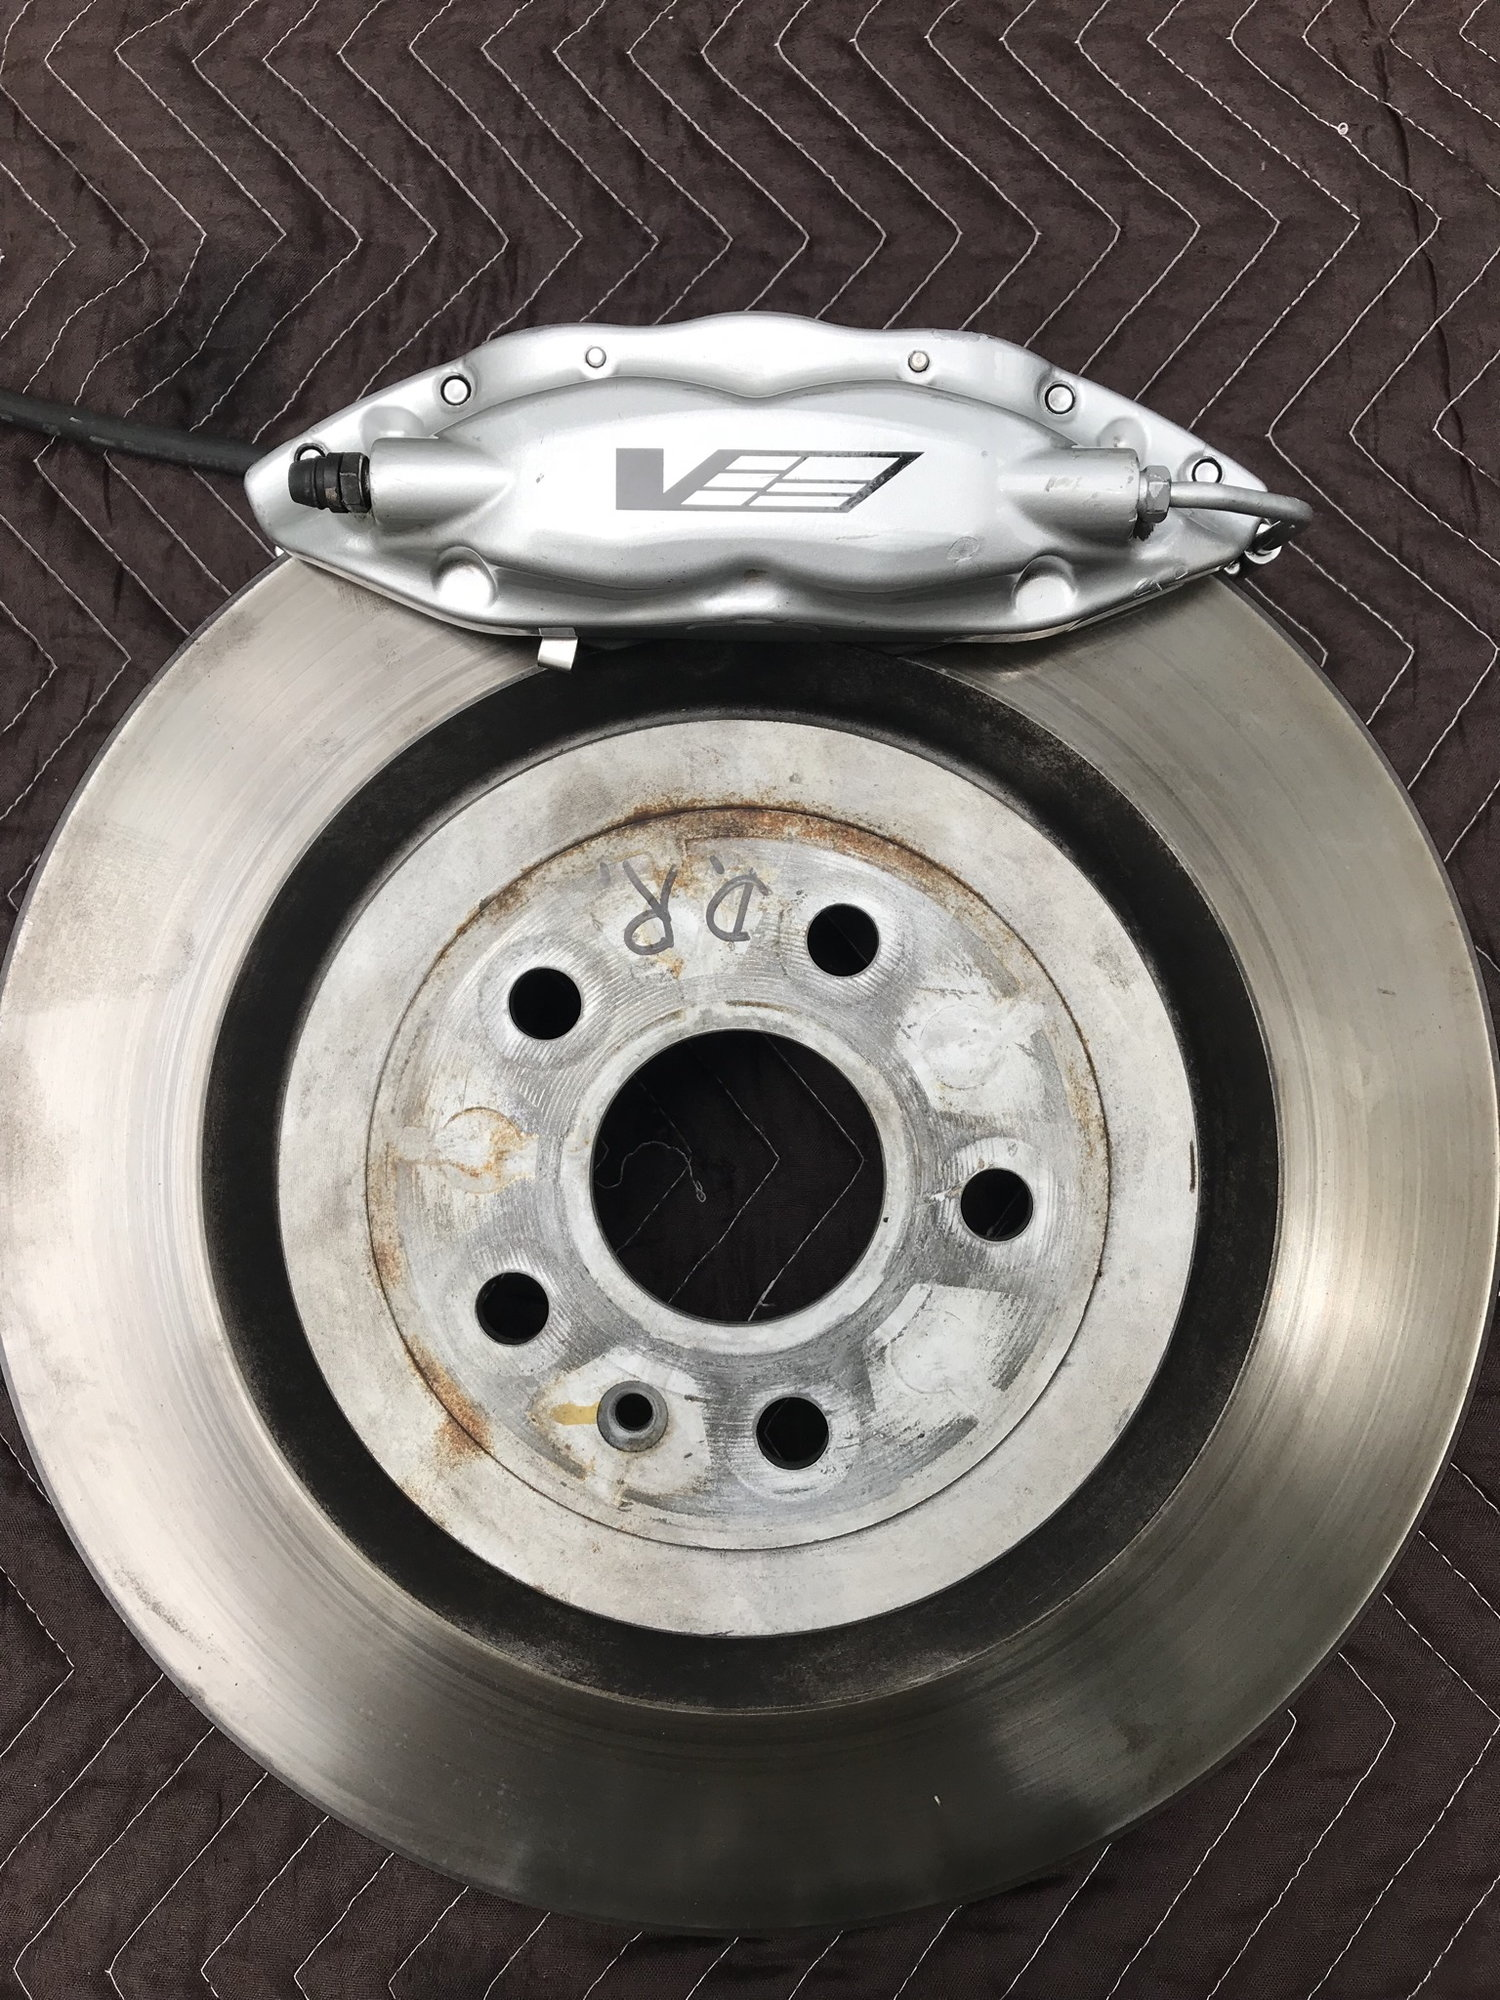 Cadillac Cts V Used >> Complete CTS-V/ZL1 Brembo Brake system including calipers, rotors, adapter brackets ...